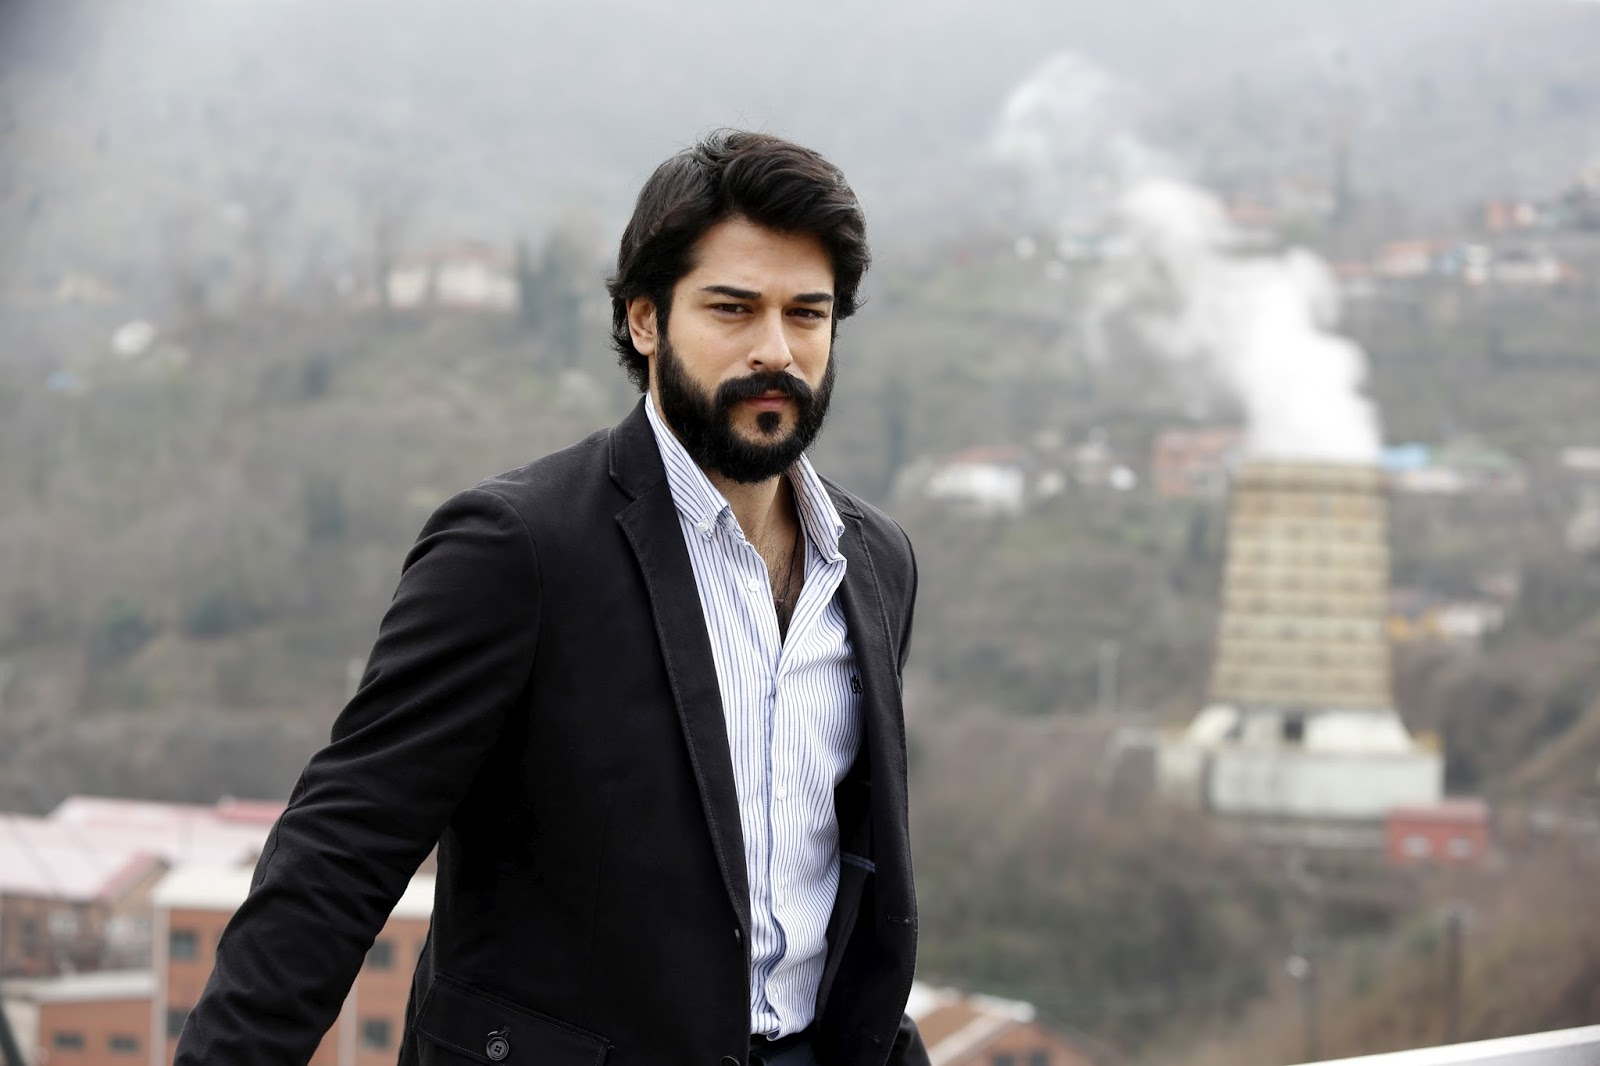 burak özçivit height weight